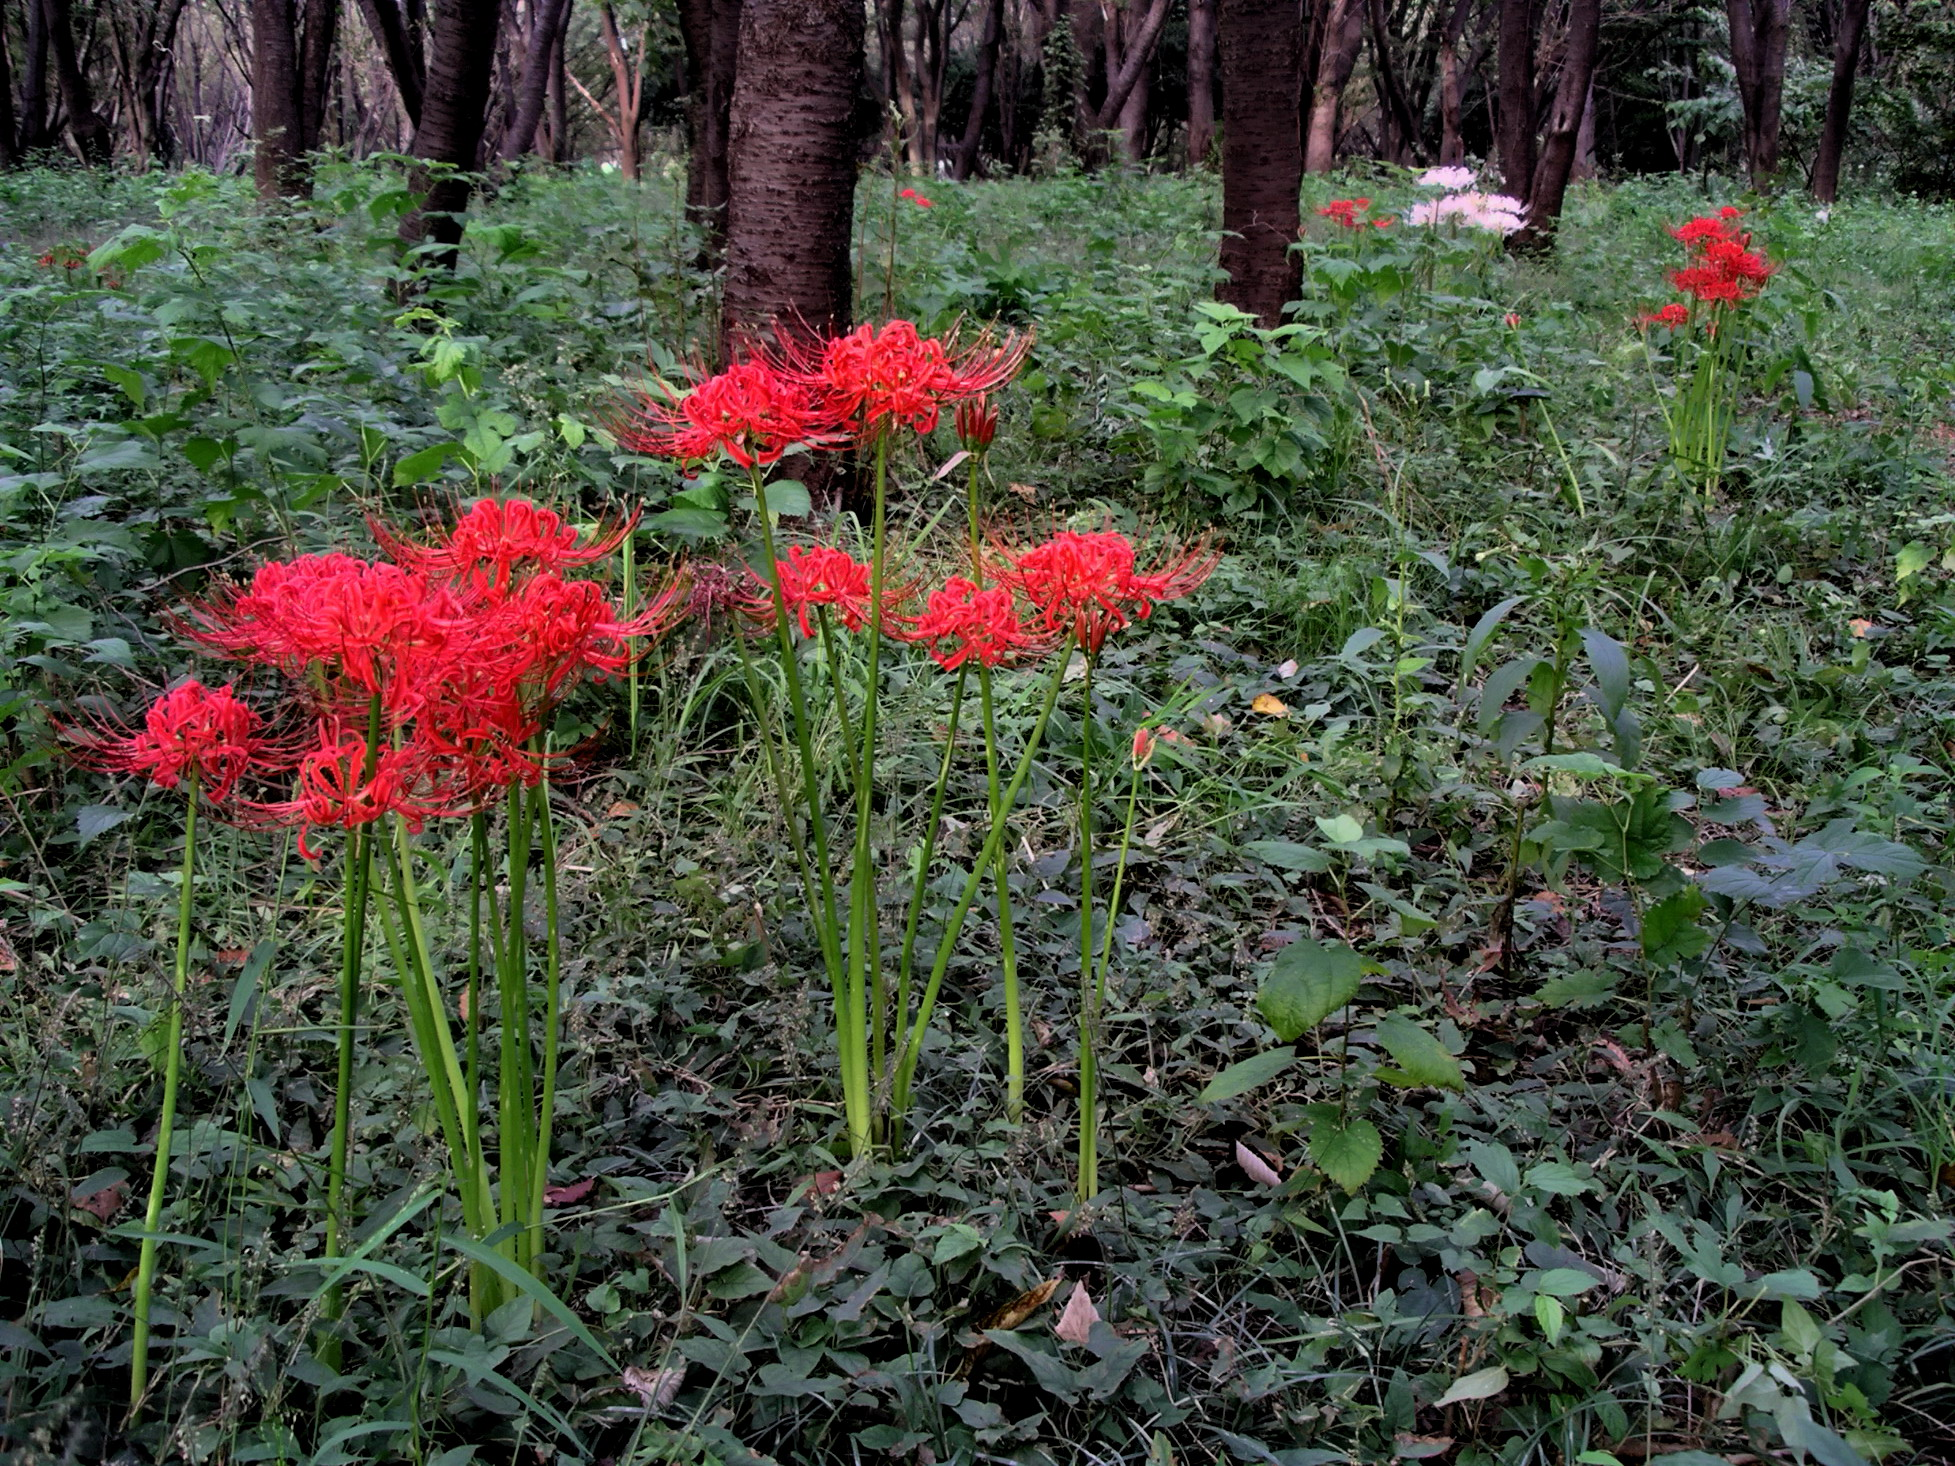 Lycoris radiata wikipedia lycoris radiata higanbana in a woodsg izmirmasajfo